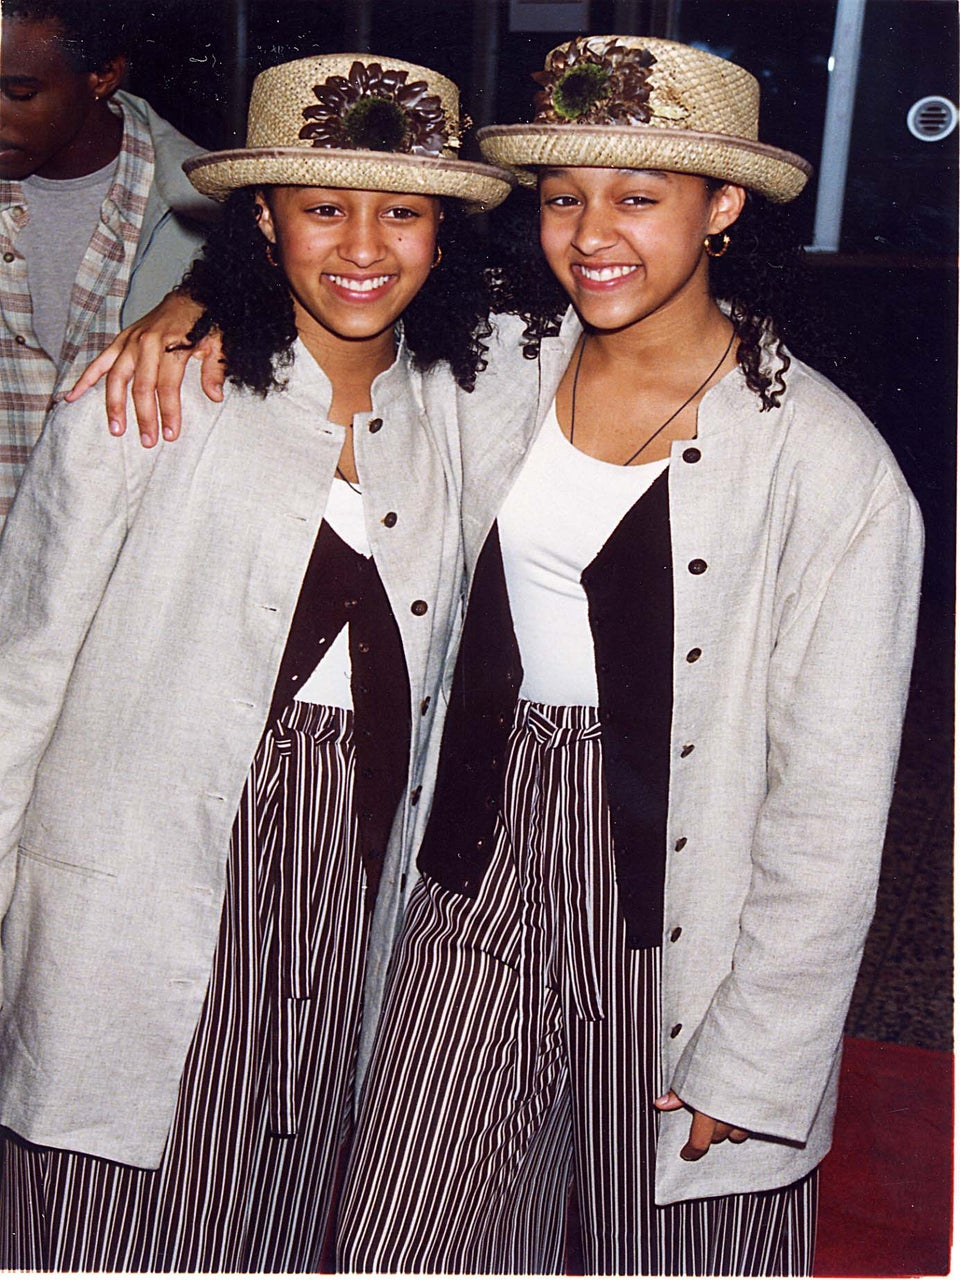 15 Photos Of Tia And Tamera That Prove They Were The Queens Of 90's Style